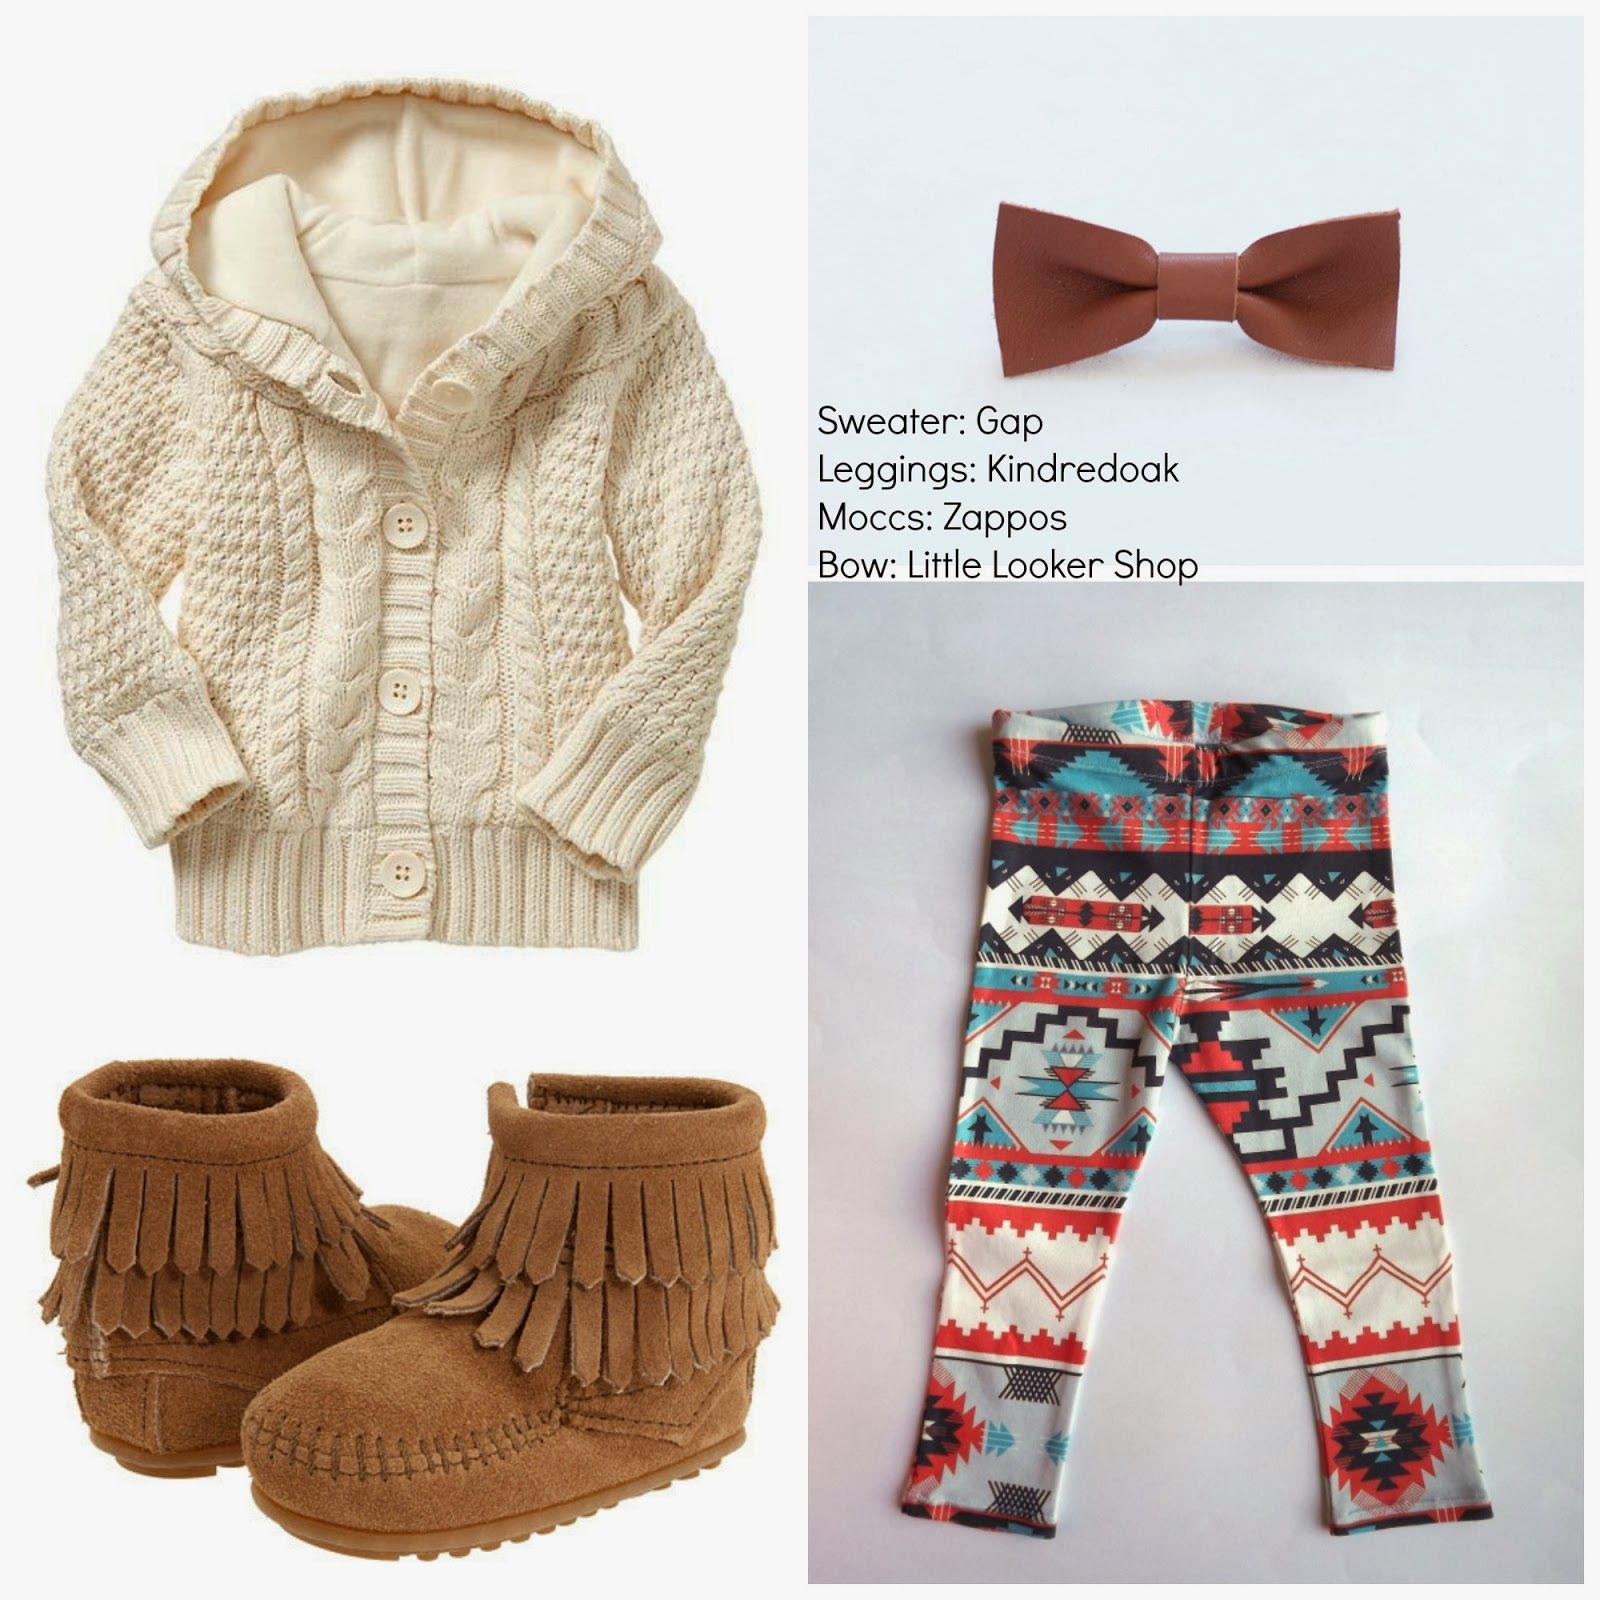 Conjunto Ideal chiquitines Pinterest